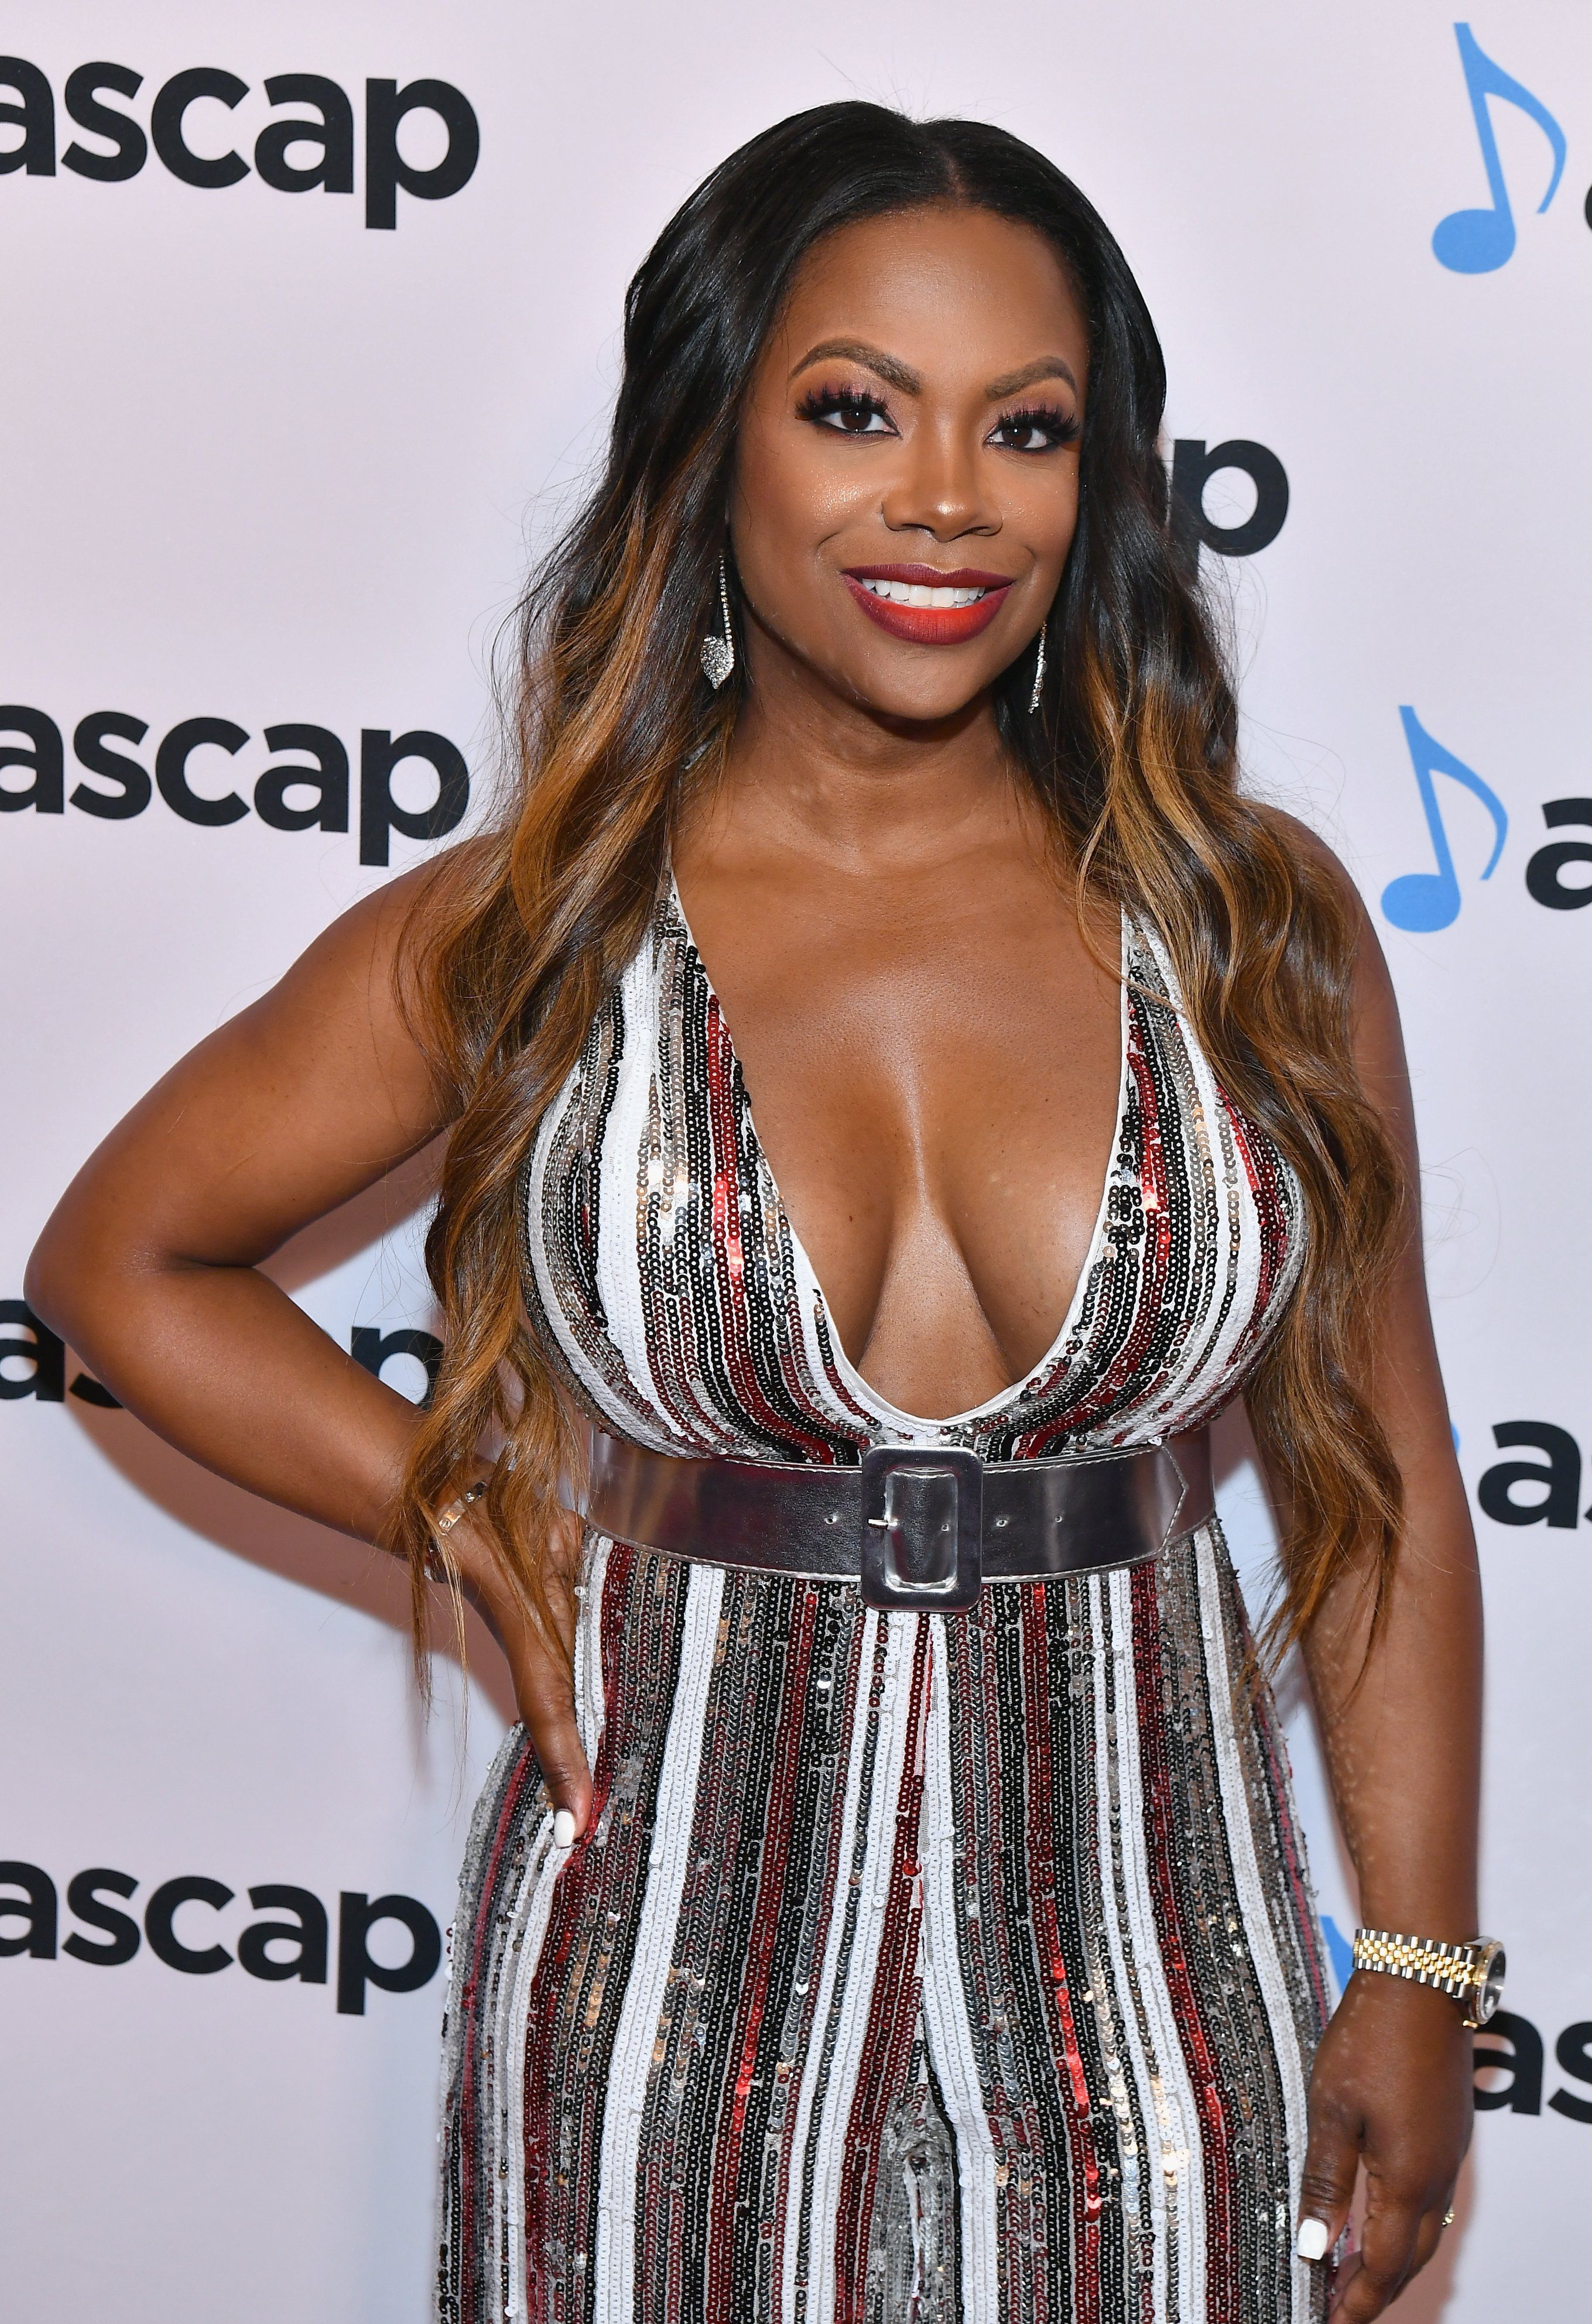 Kandi Burruss during the 31st Annual ASCAP Rhythm & Soul Music Awards in June 2018. | Photo: Getty Images